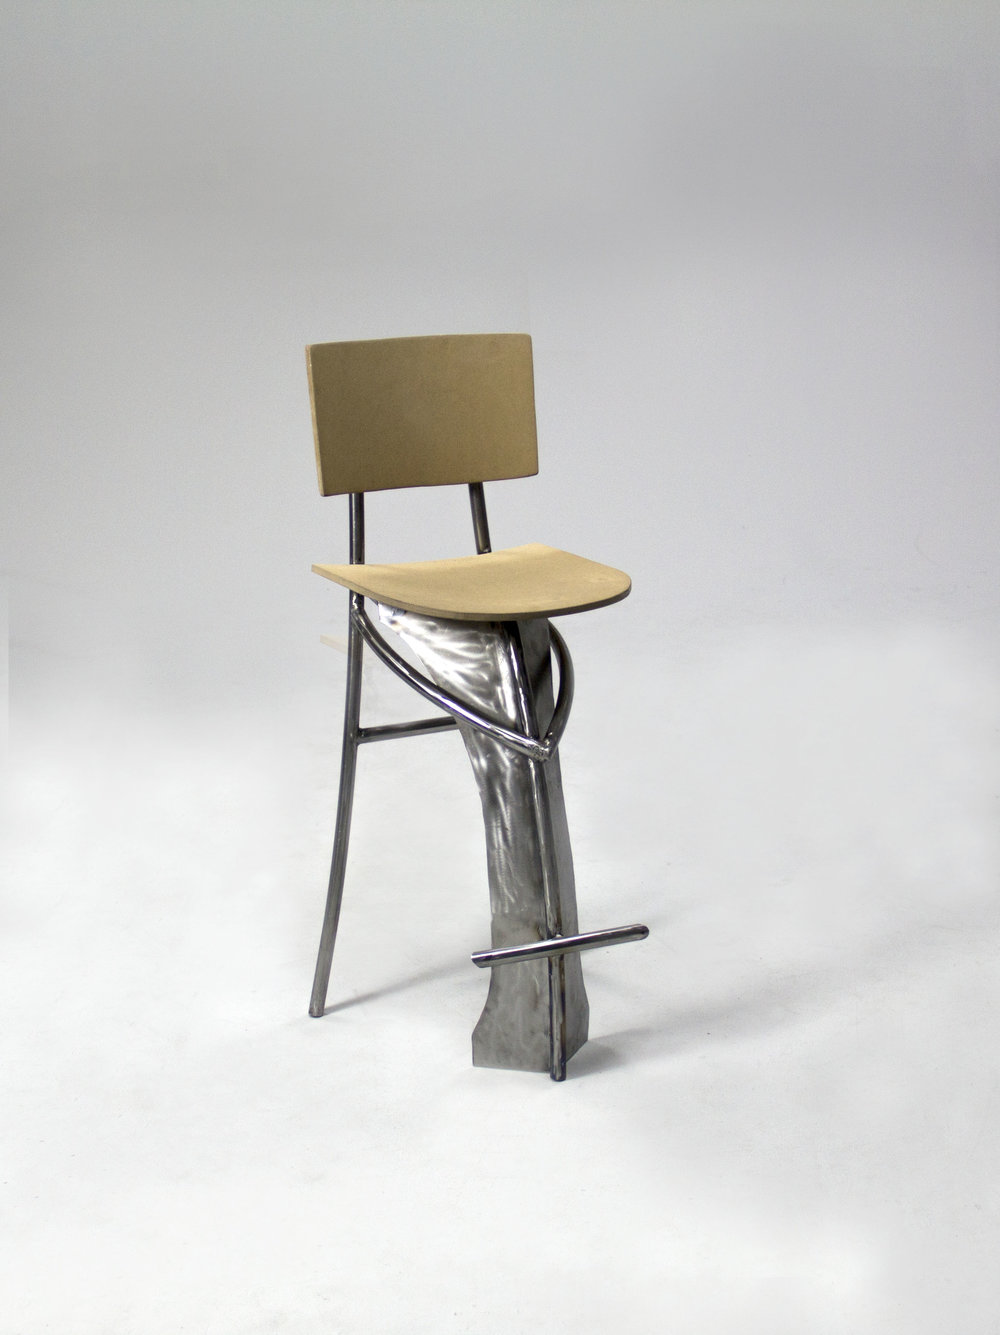 Huang_Kathy_AnchorStool_SideDetail_F15